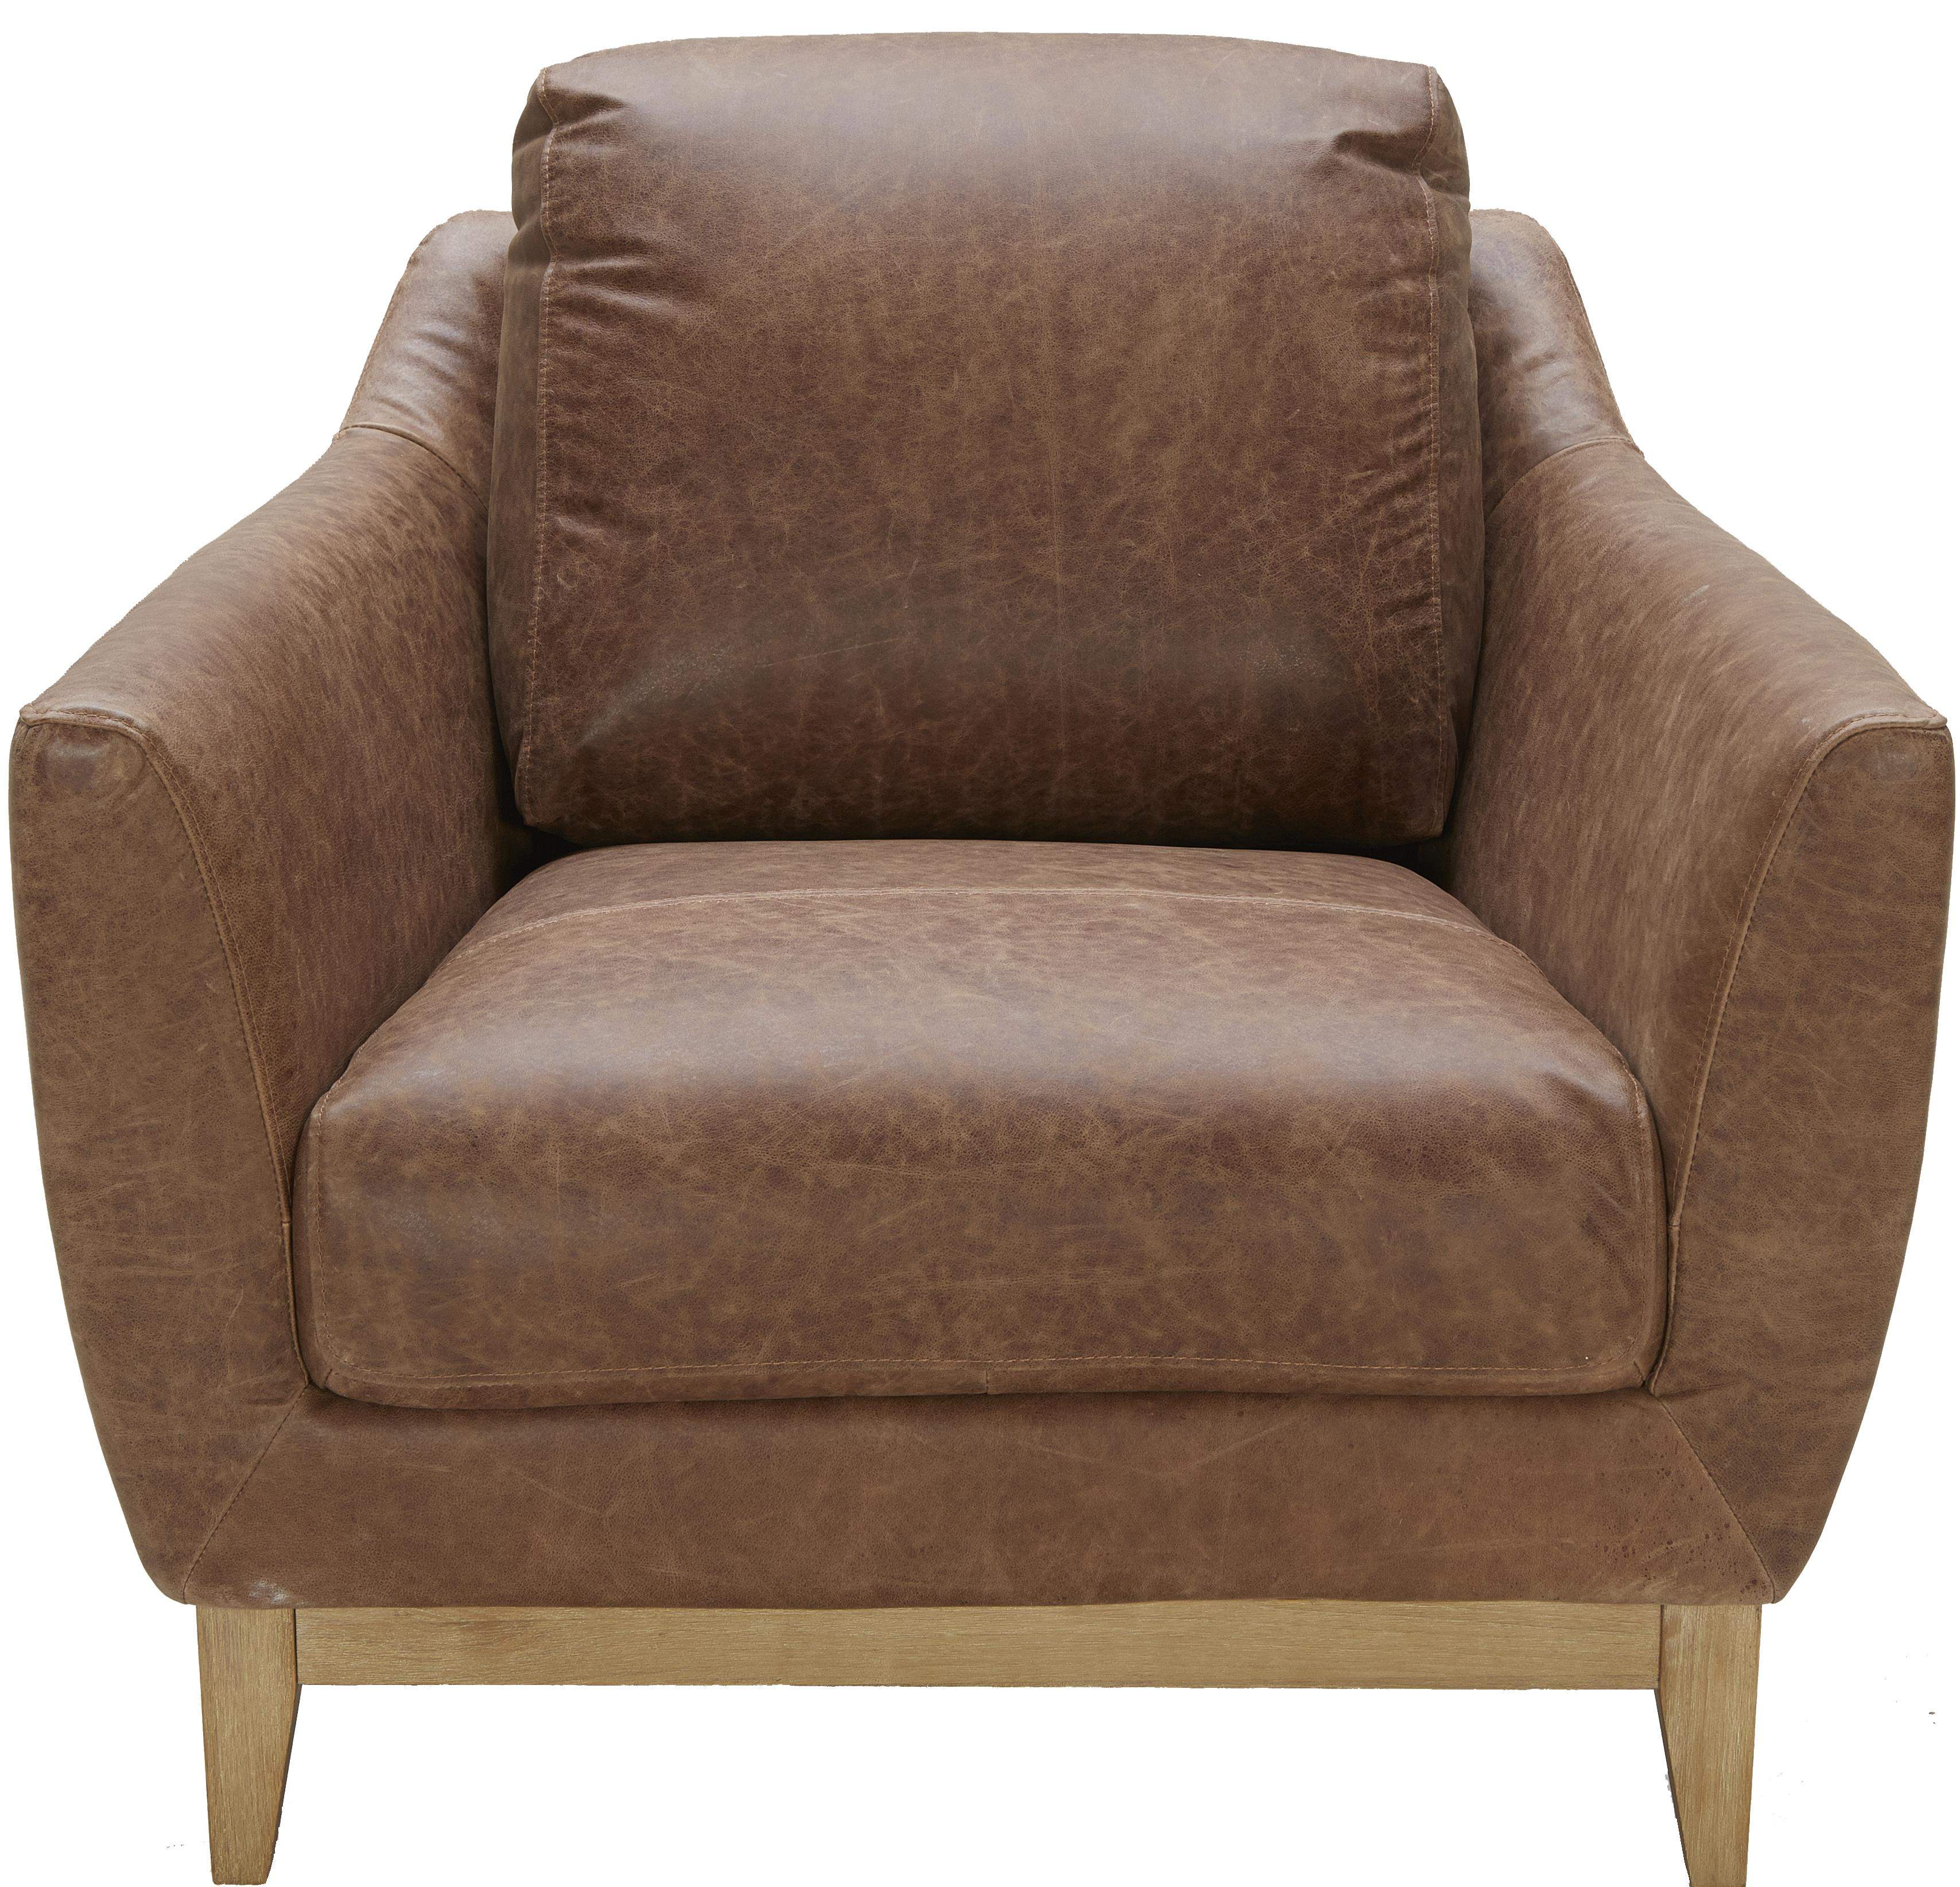 Urban Evolution Baker Modern Leather Chair - Item Number: 5179C-NL9303-G021